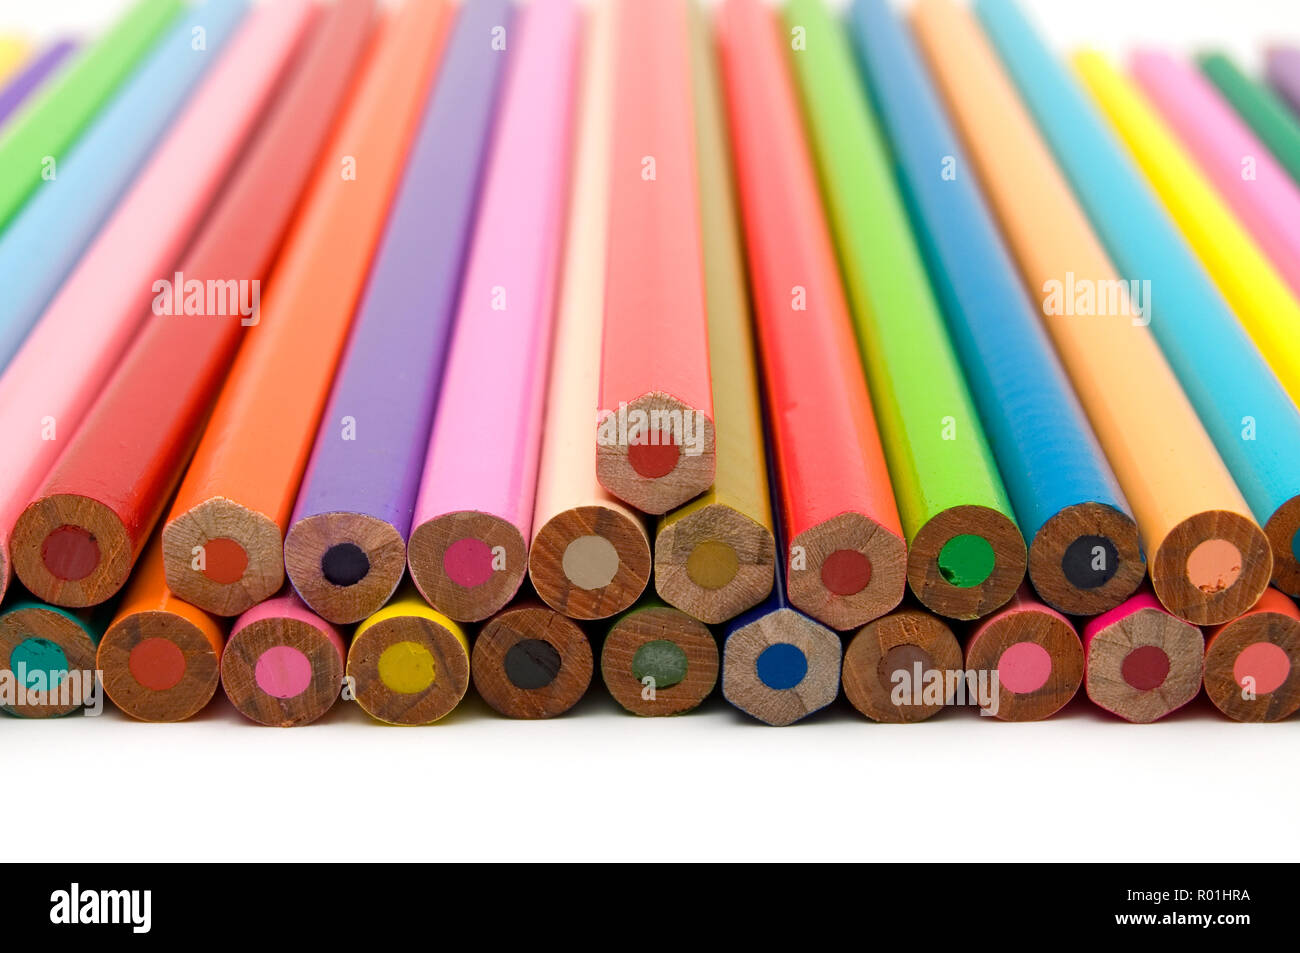 Child Coloring Crayons Stock Photos & Child Coloring Crayons Stock ...